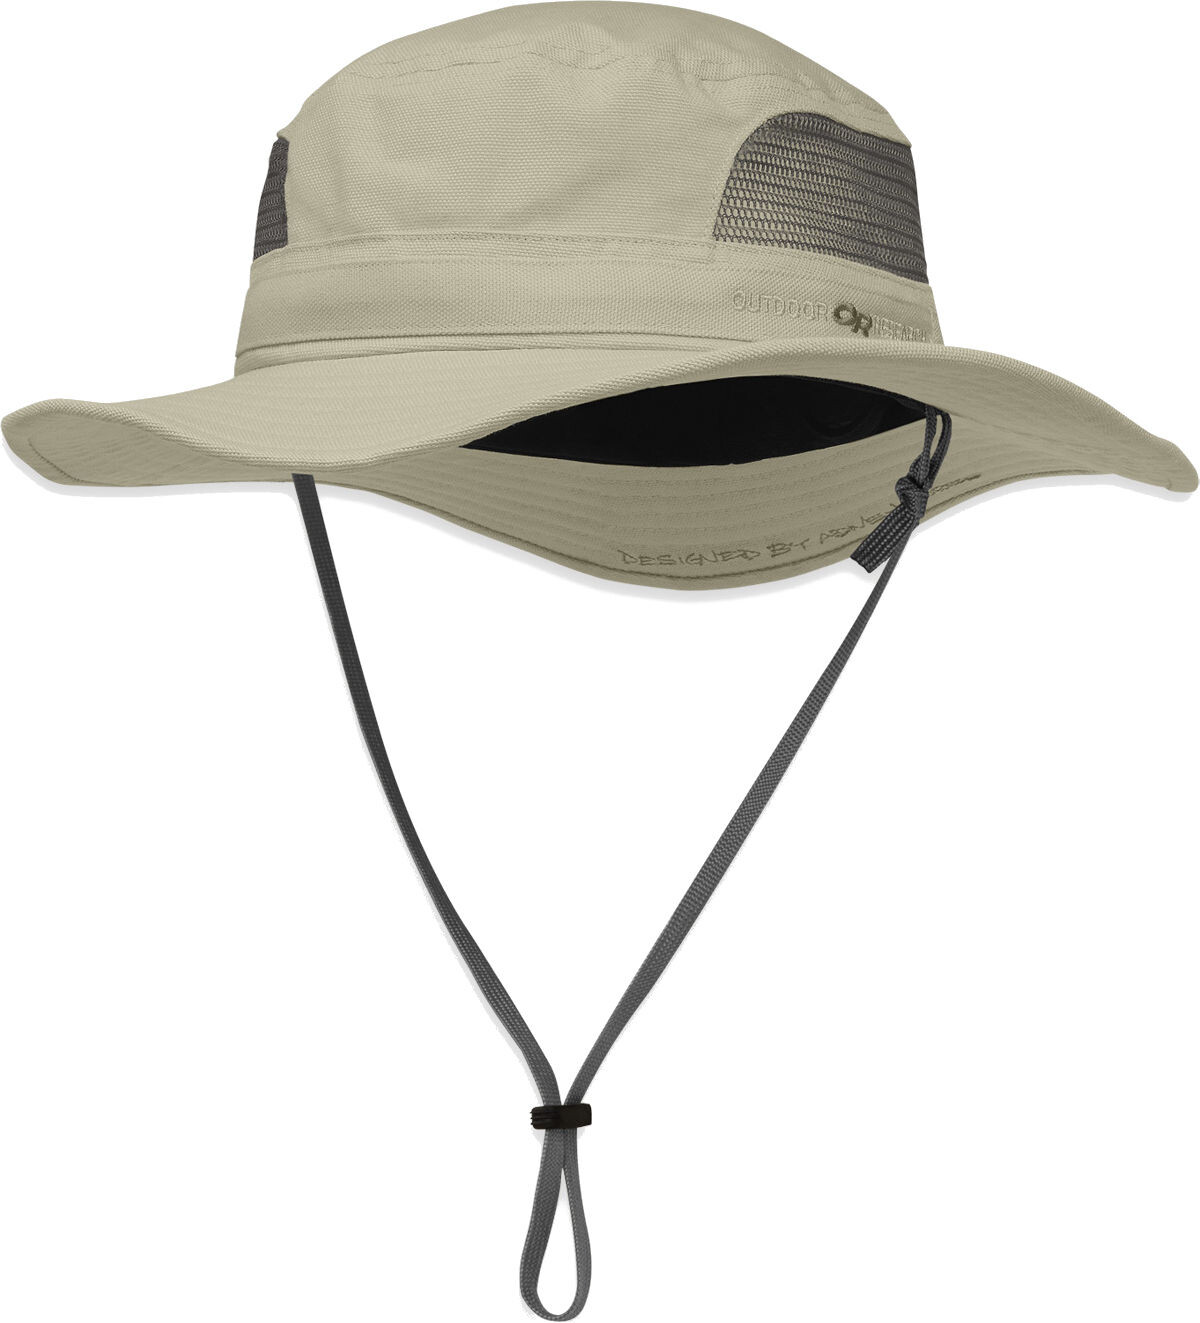 Outdoor Research Transit Sun Hat Cairn - addnature.com 6aab5aac385d